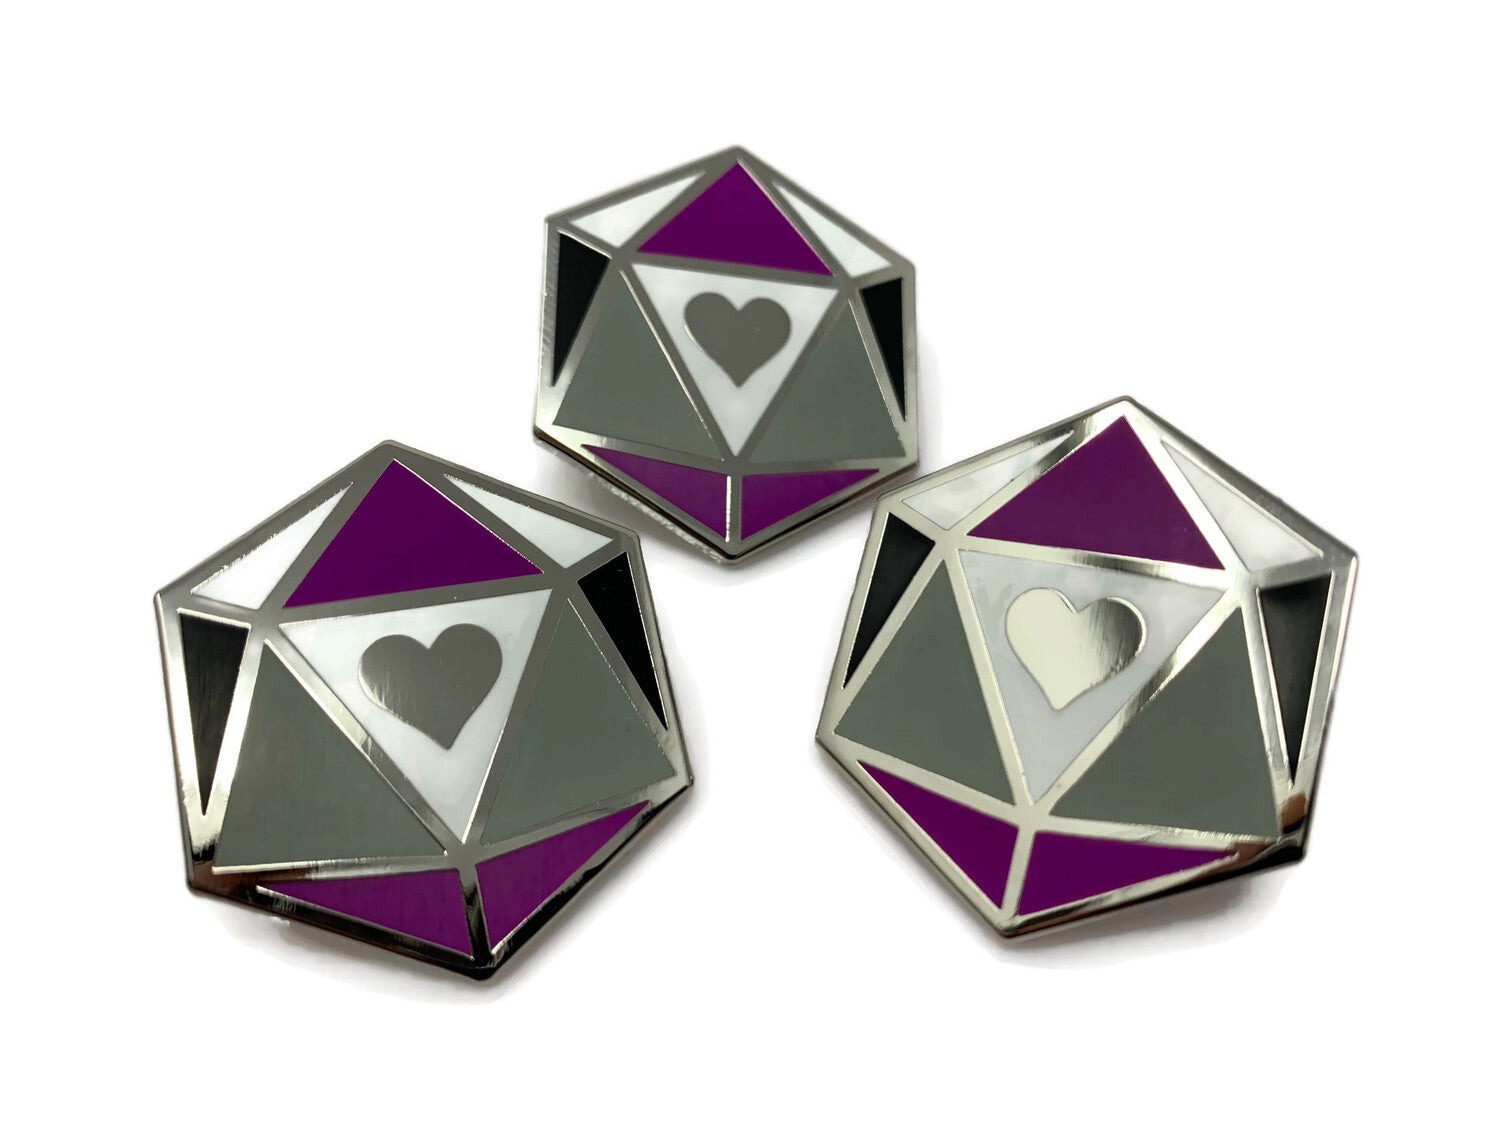 HeartBeat Dice: Asexual Pride Pin